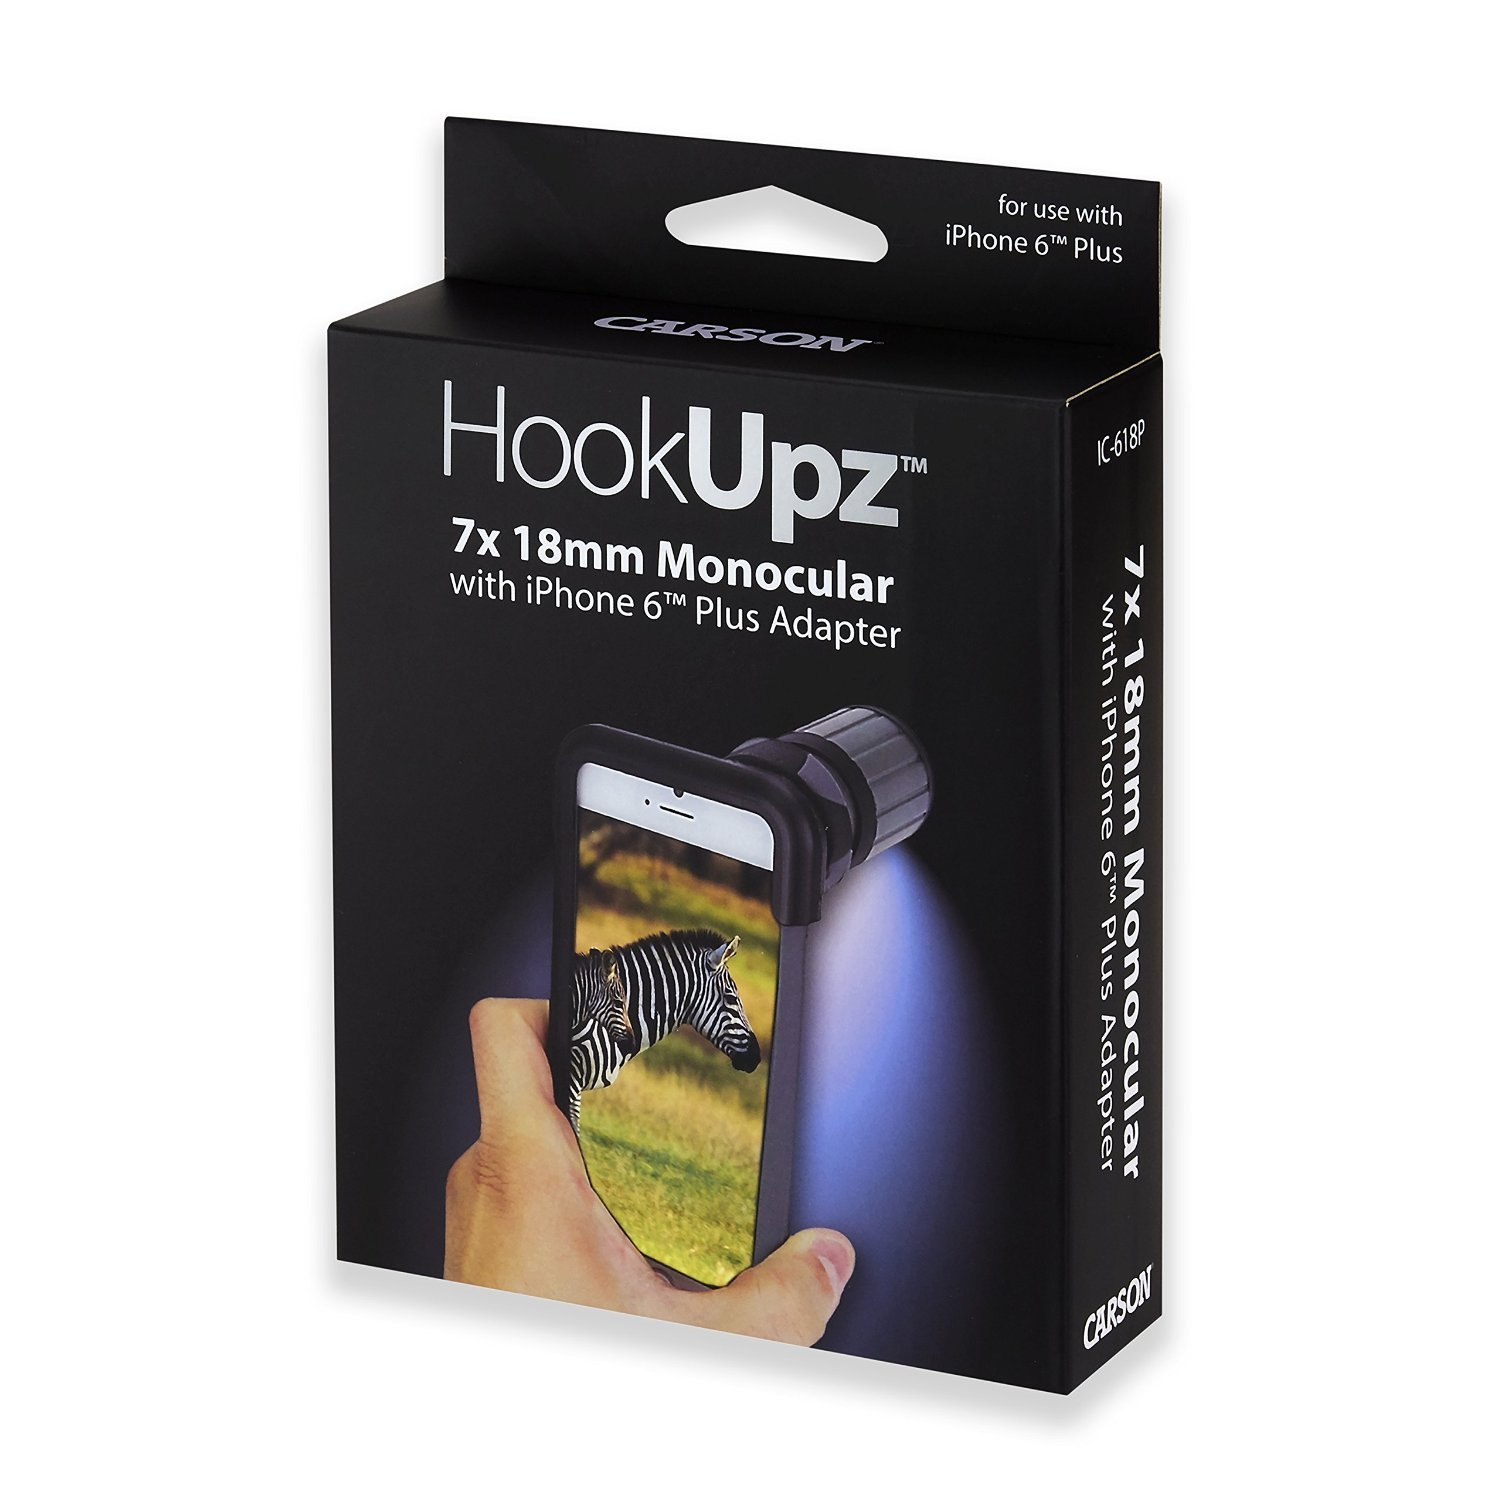 Carson HookUpz iPhone 6 Plus Digiscoping Adapter with 7x18mm Close Focus Monocular (IC-618P) by Carson